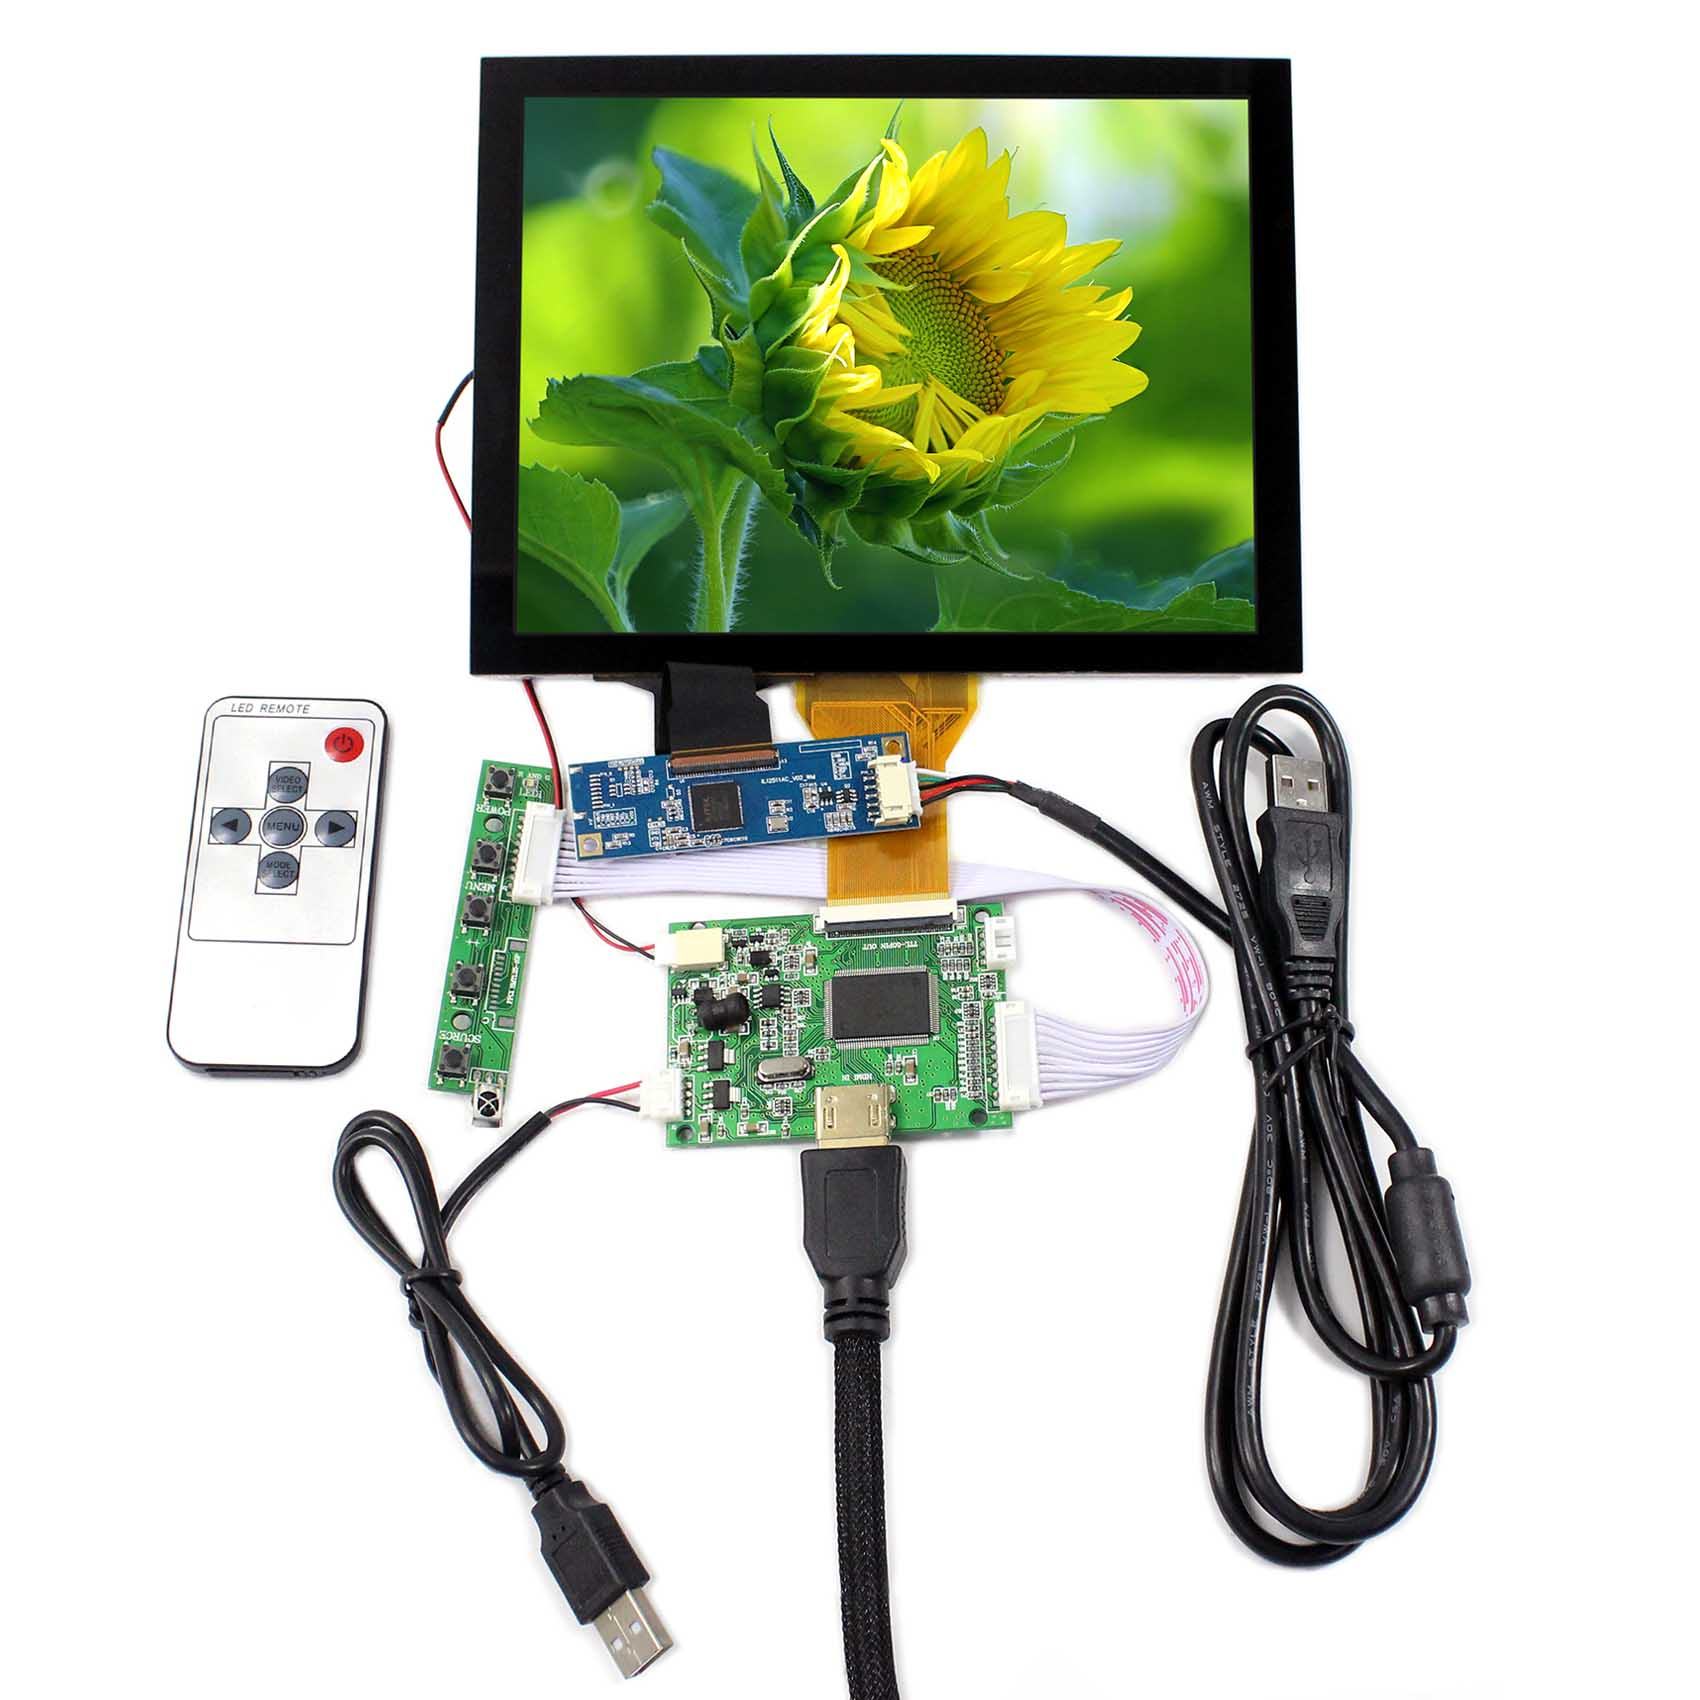 8inch LCD Screen 800x600 Resolution VS080TC-A1 Capacitive Touch Panel VS-TY50-V2 HDMI LCD Controller Board EJ080NA-05A vga av lcd controller board kyv n2 v1 8inch 800x600 ej080na 05b lcd with touch panel